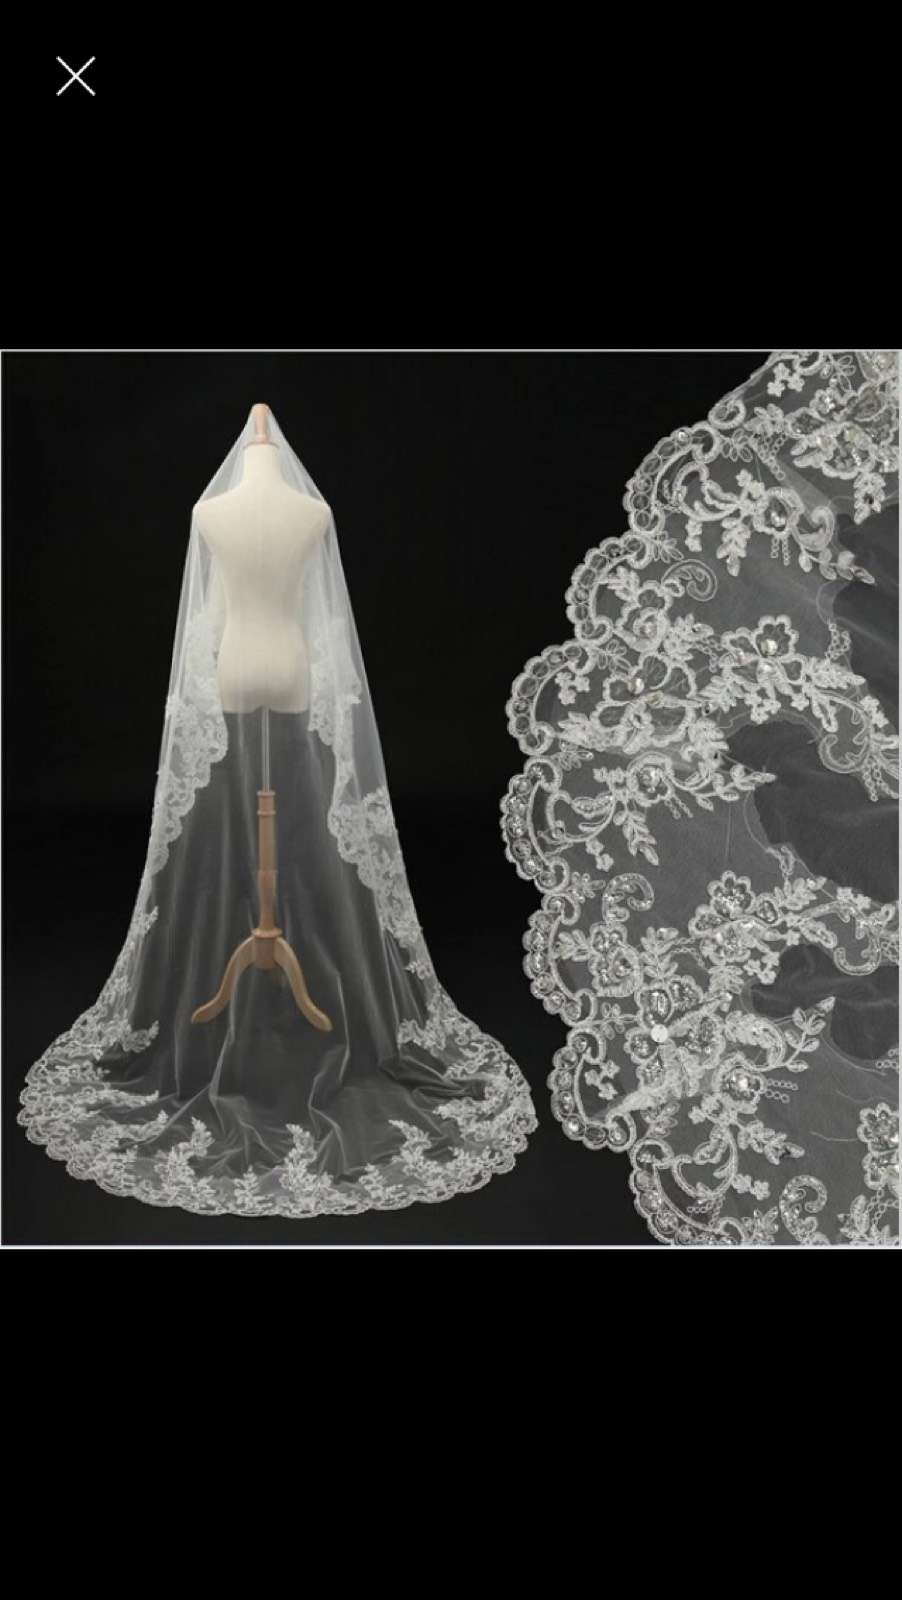 This veil comes in 4 foot and 6 foot lengths. Wear it pinned in your hair or attach a comb.  It can be worn with a headband, tiara or comb. If the flowered headpiece is used, it can be made into a Juilette cap. It is free with your gown.